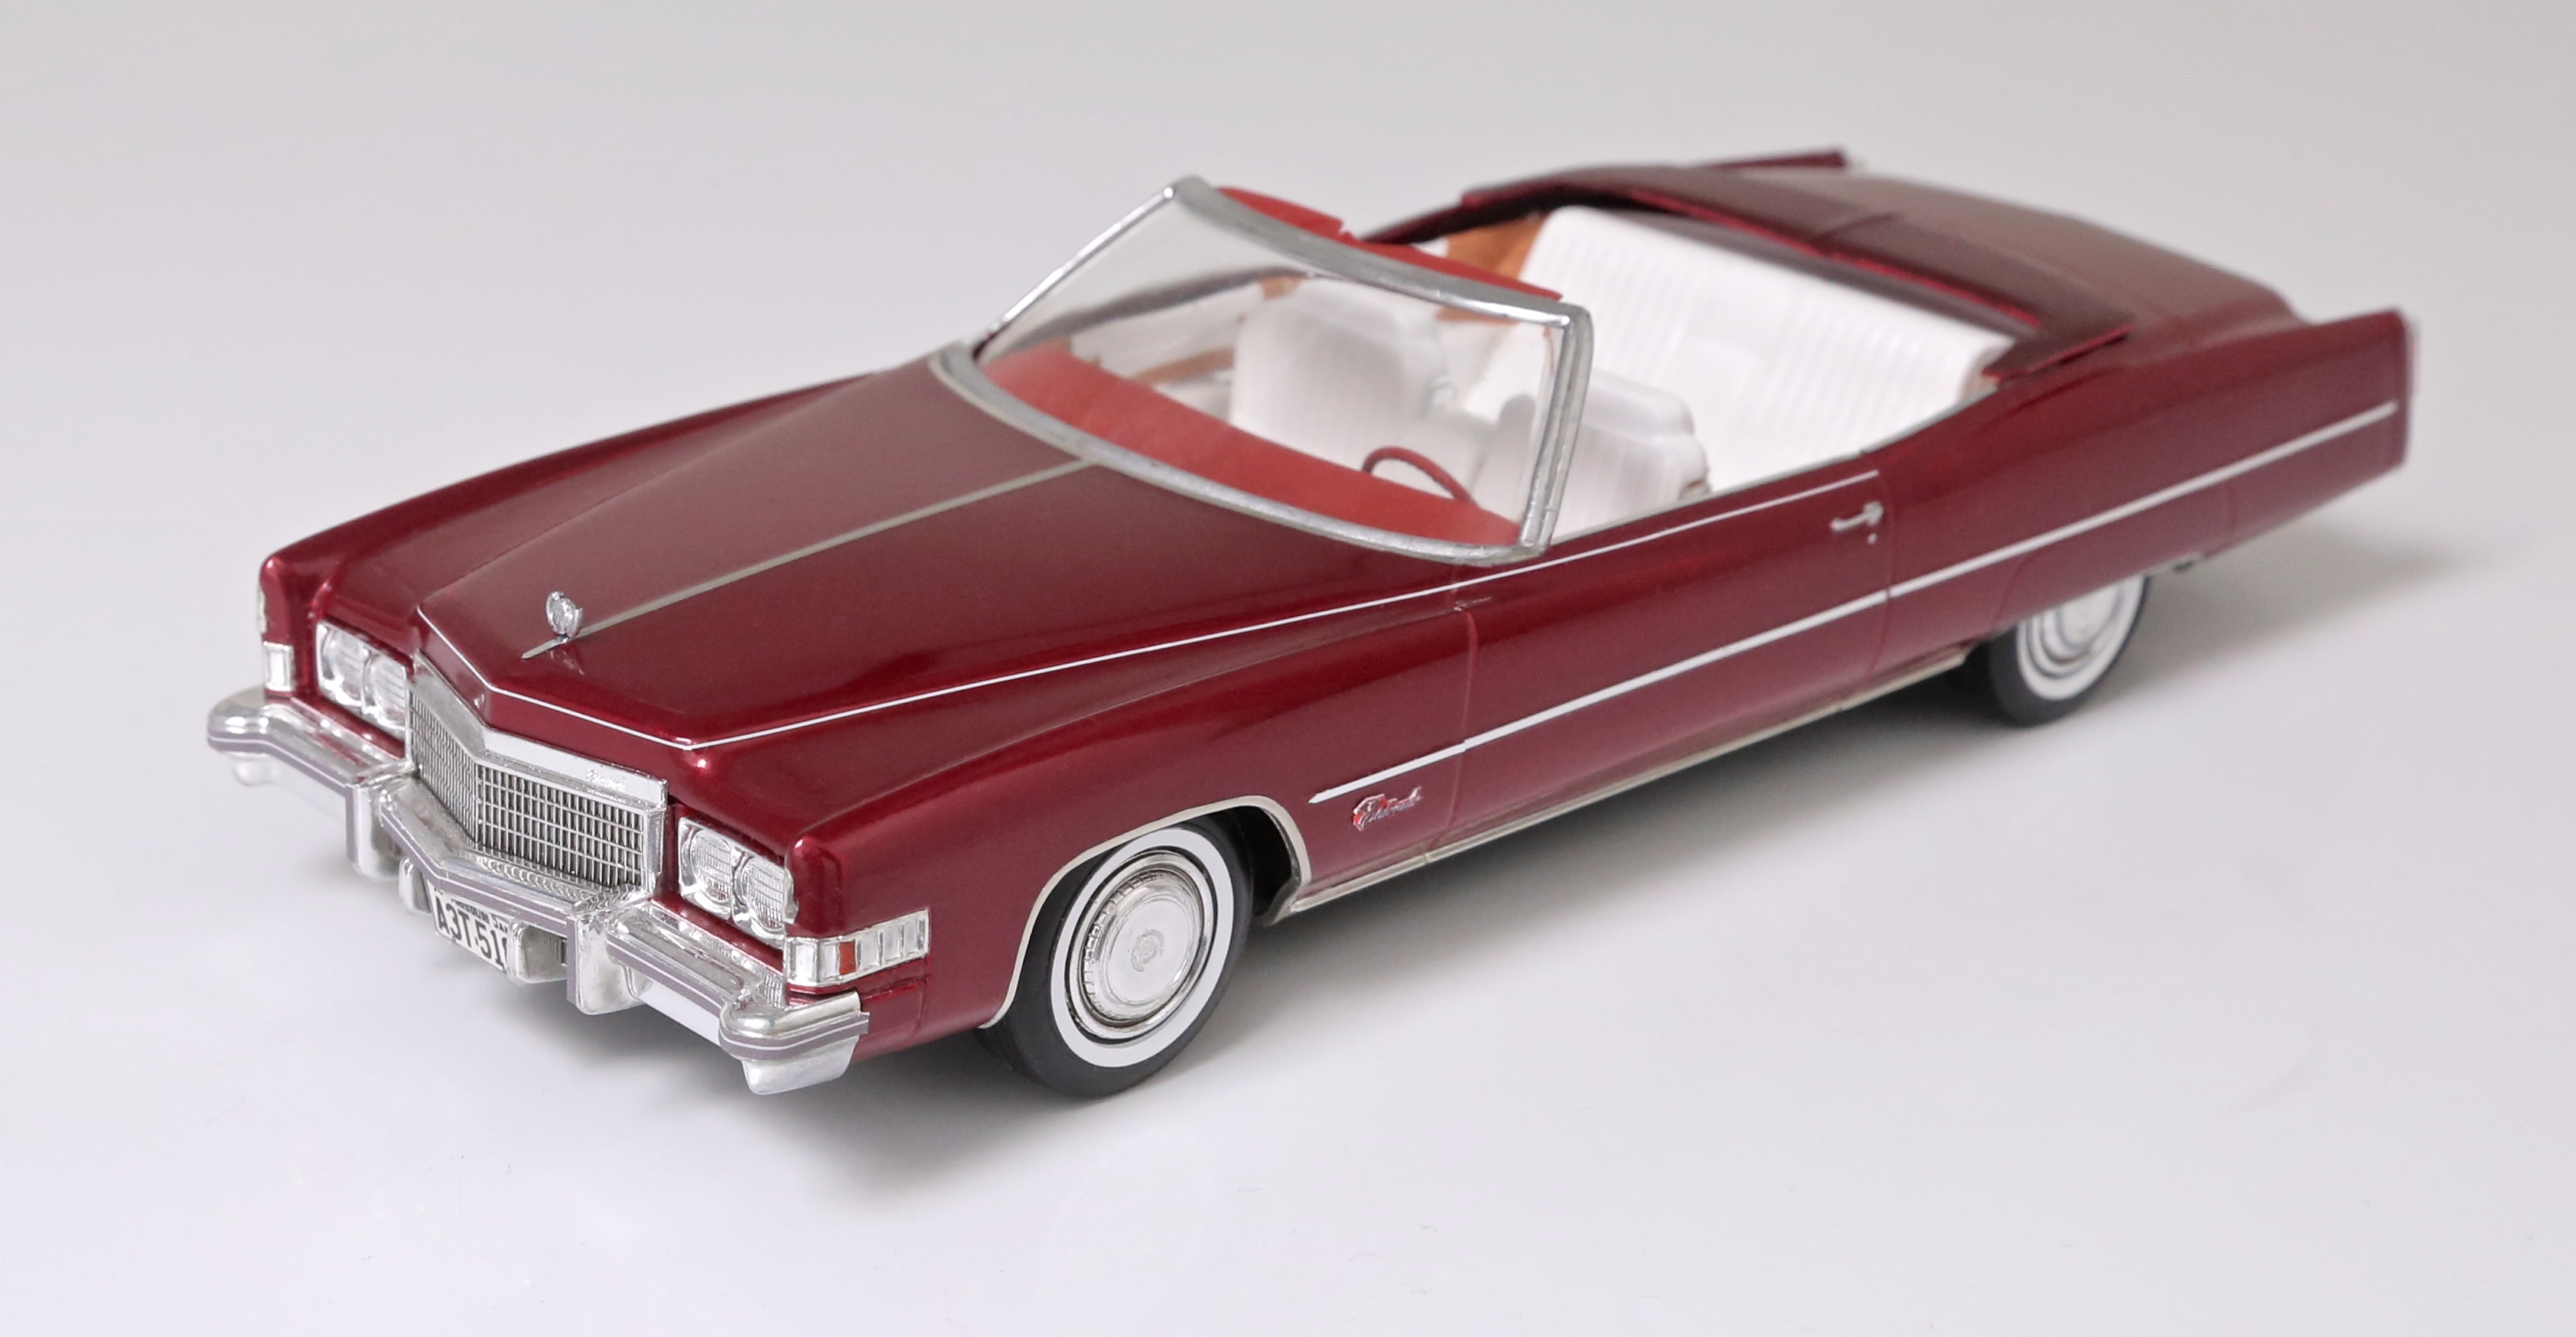 1974 Cadillac Eldorado Convertible - Under Glass - Model